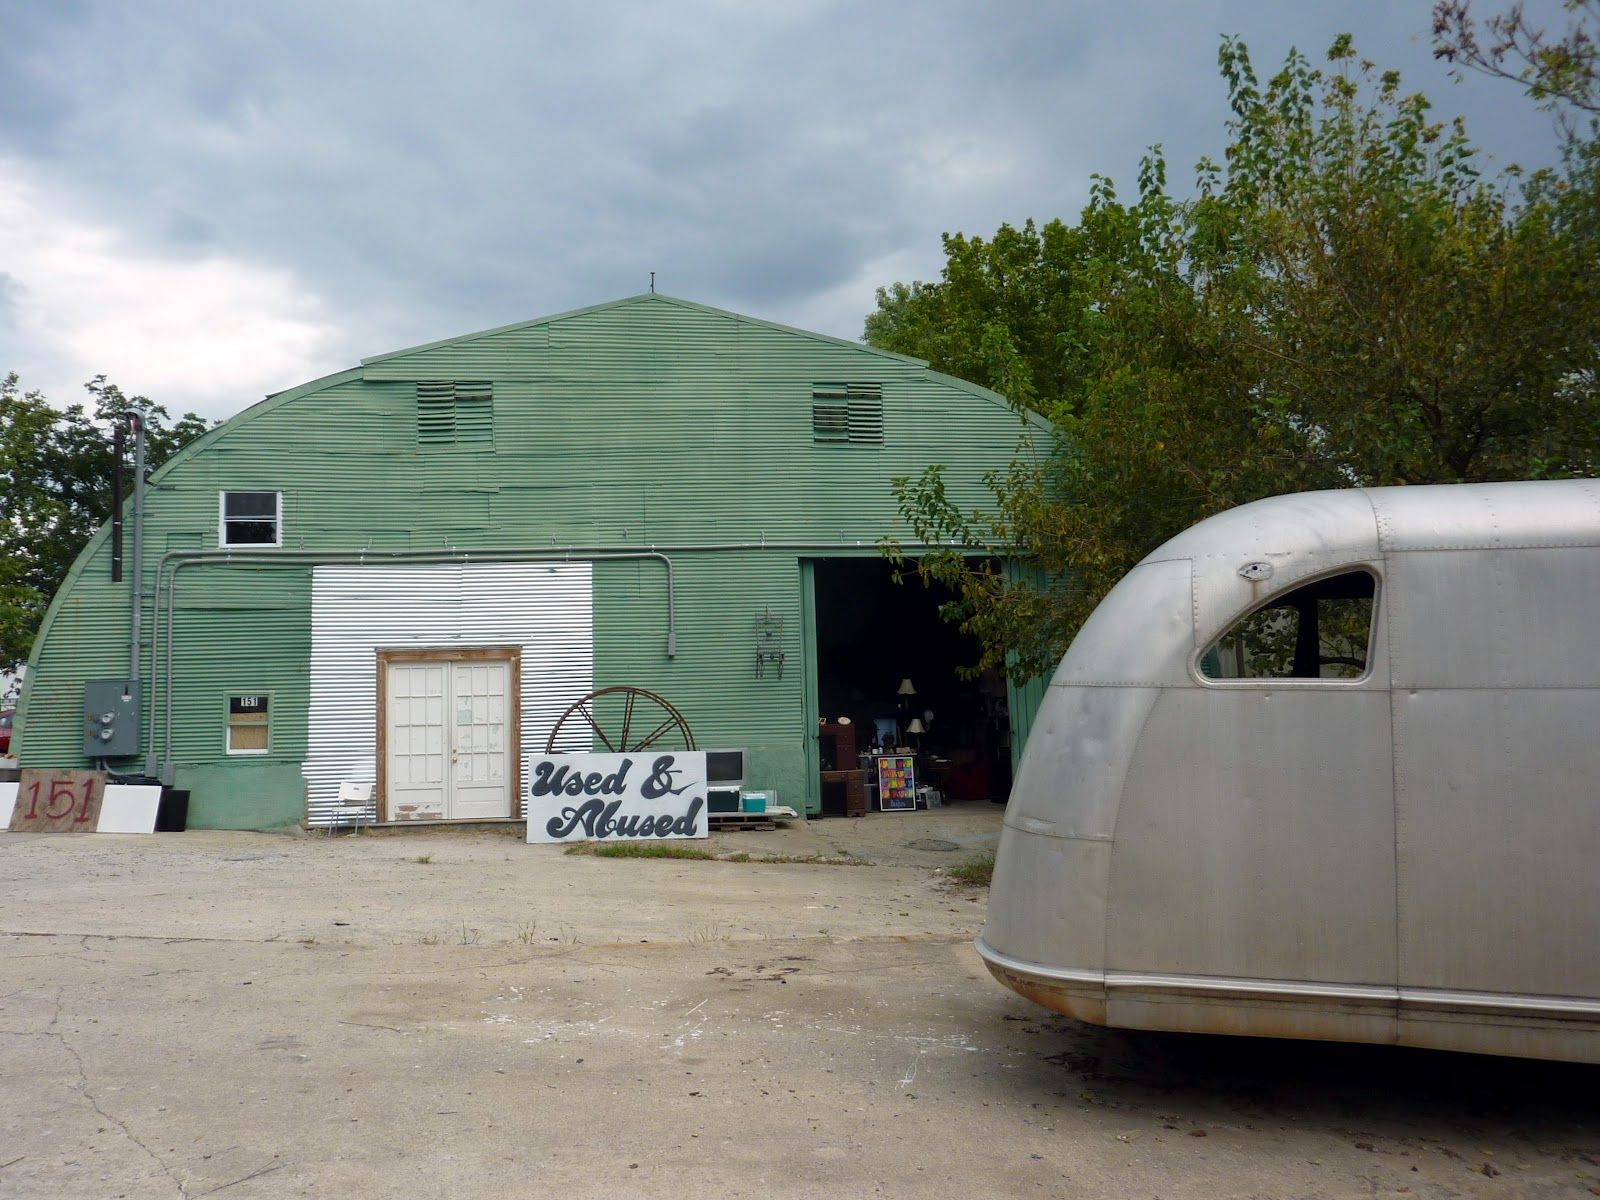 17 Best Quonset hut home Ideas Choose